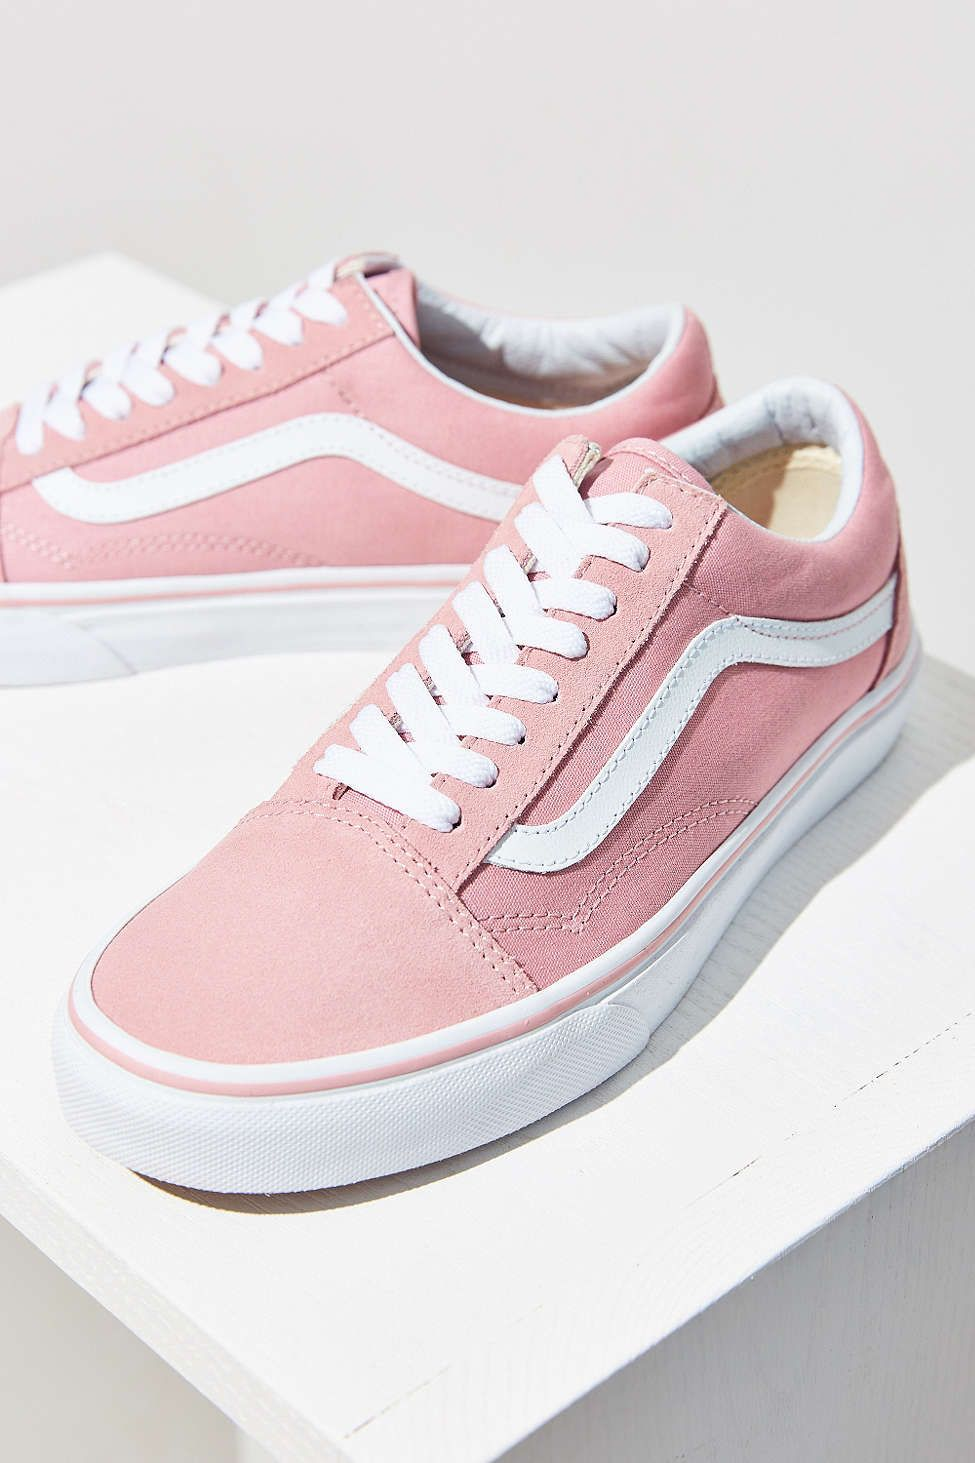 f3db543f1f Vans Pink Old Skool Sneaker | Shoes | Shoes, Vans sneakers, Pink shoes